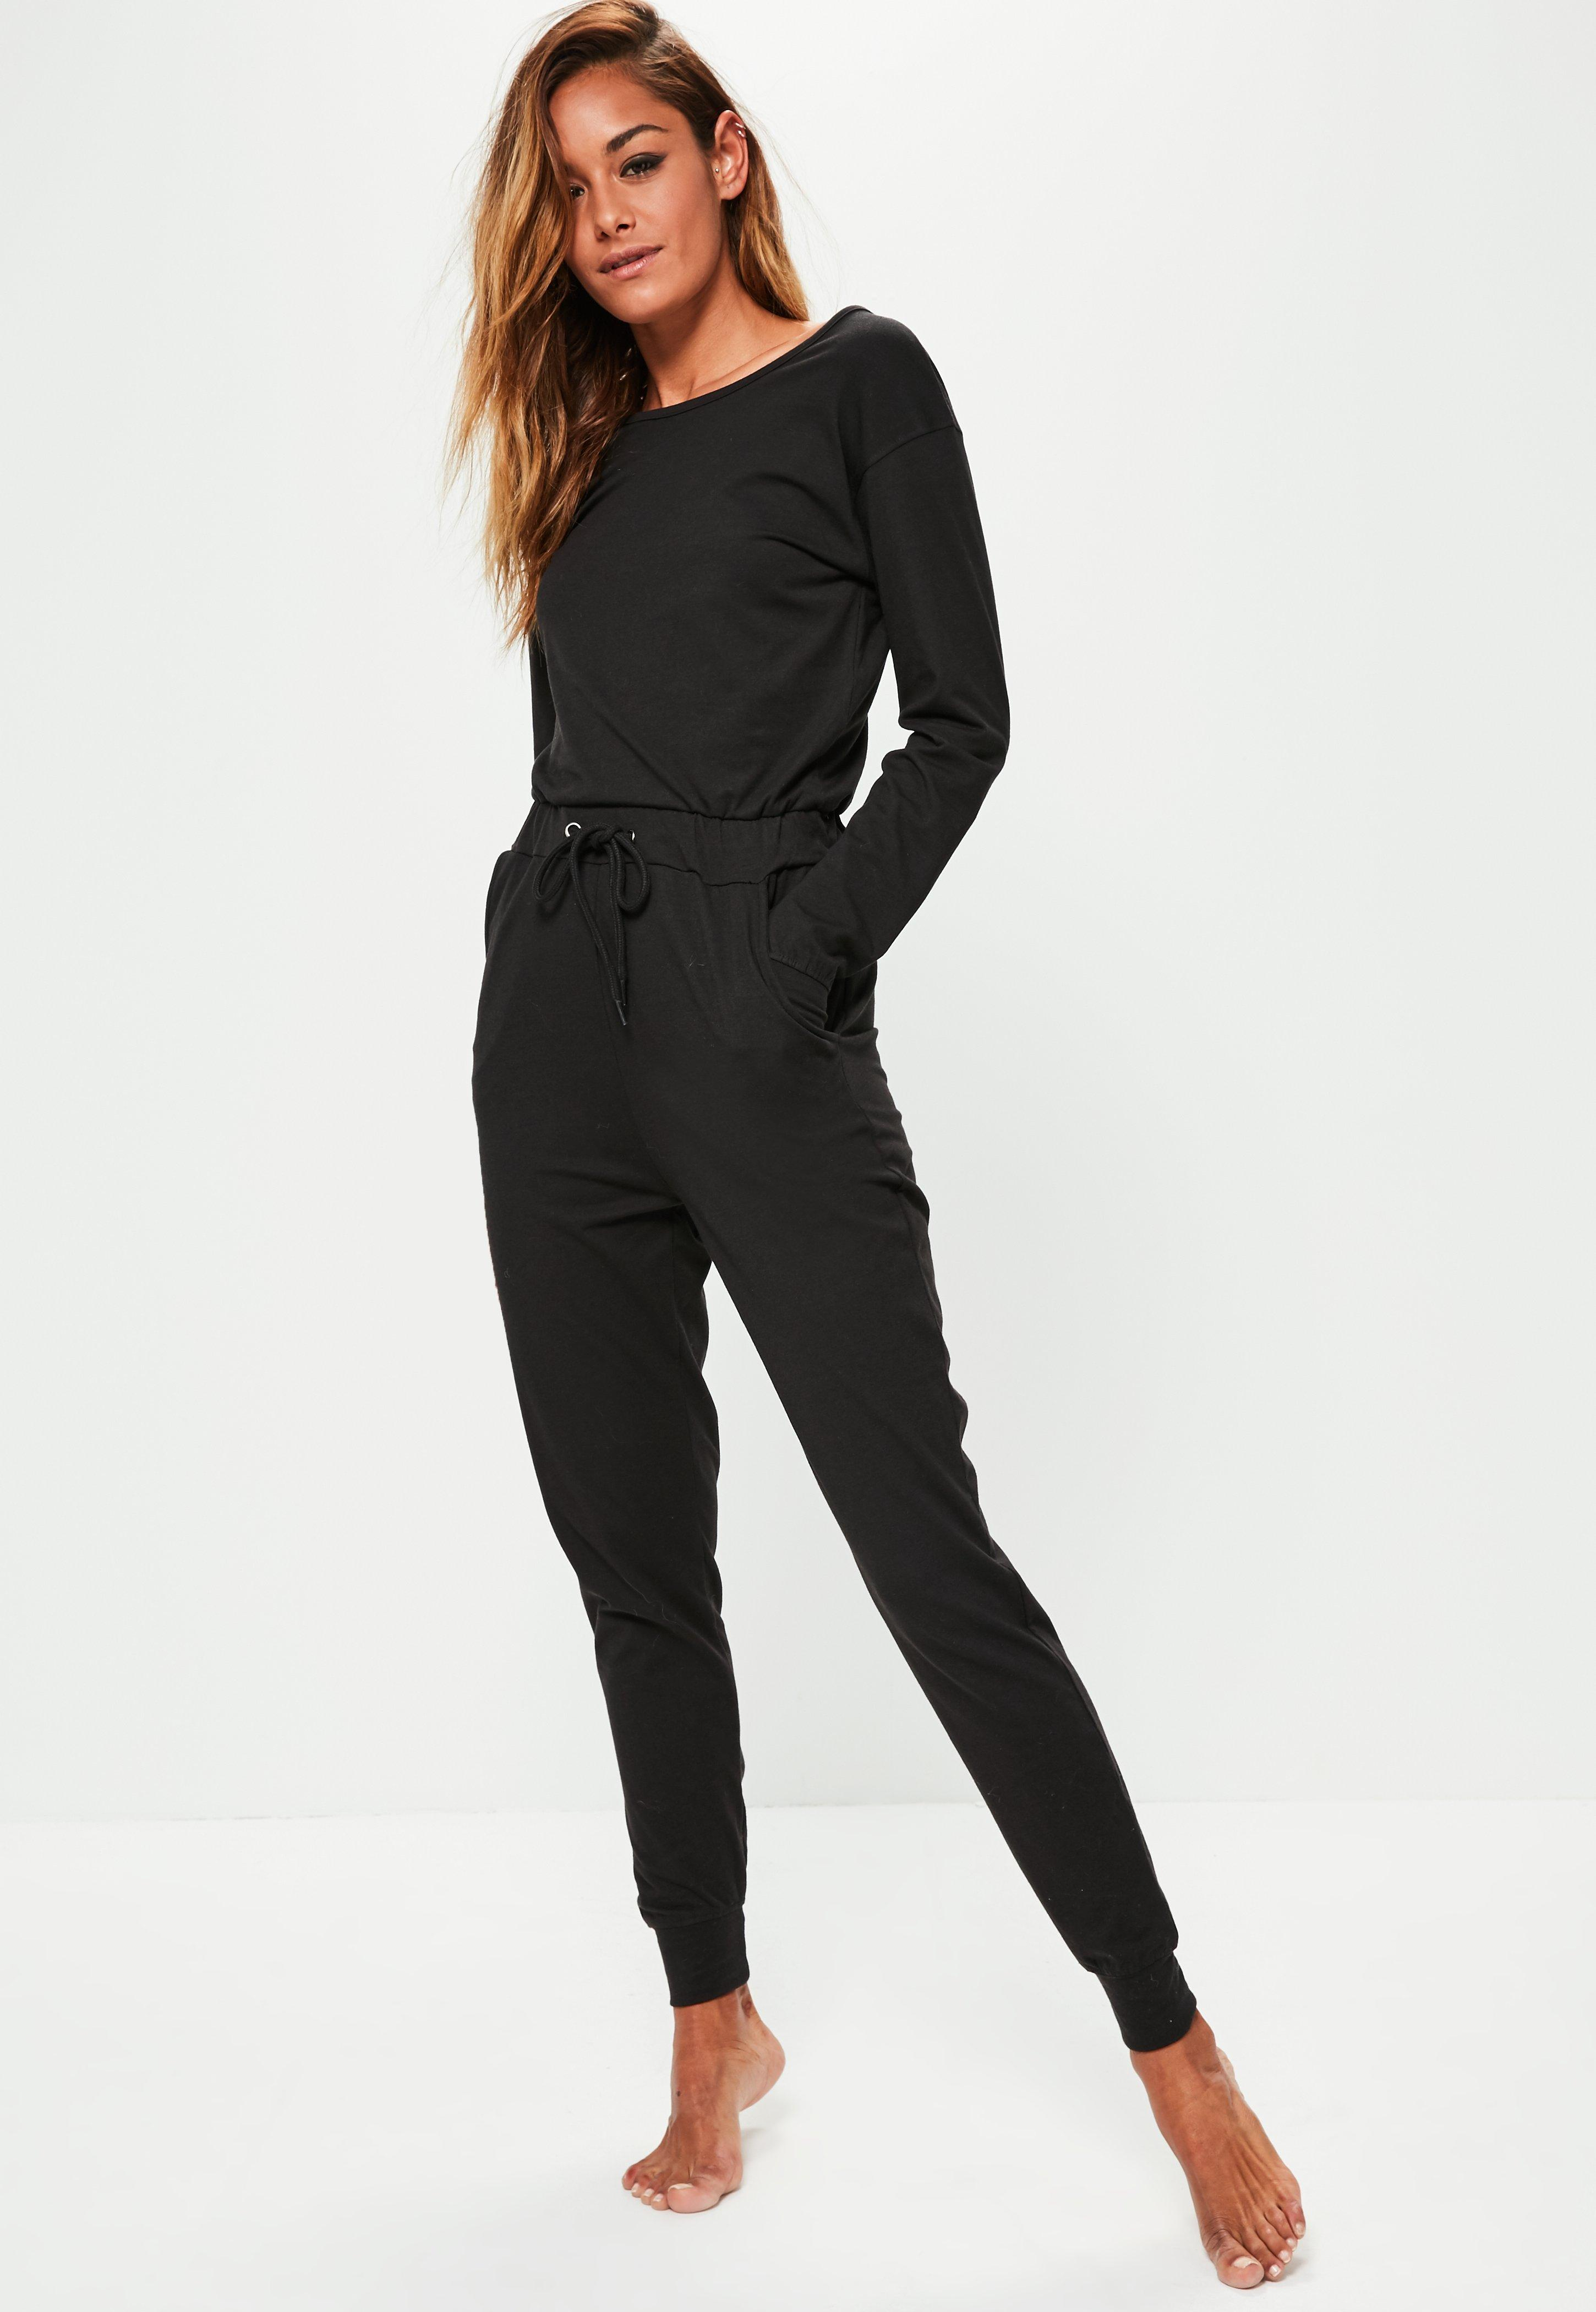 Black Casual Loungewear Jumpsuit  Missguided